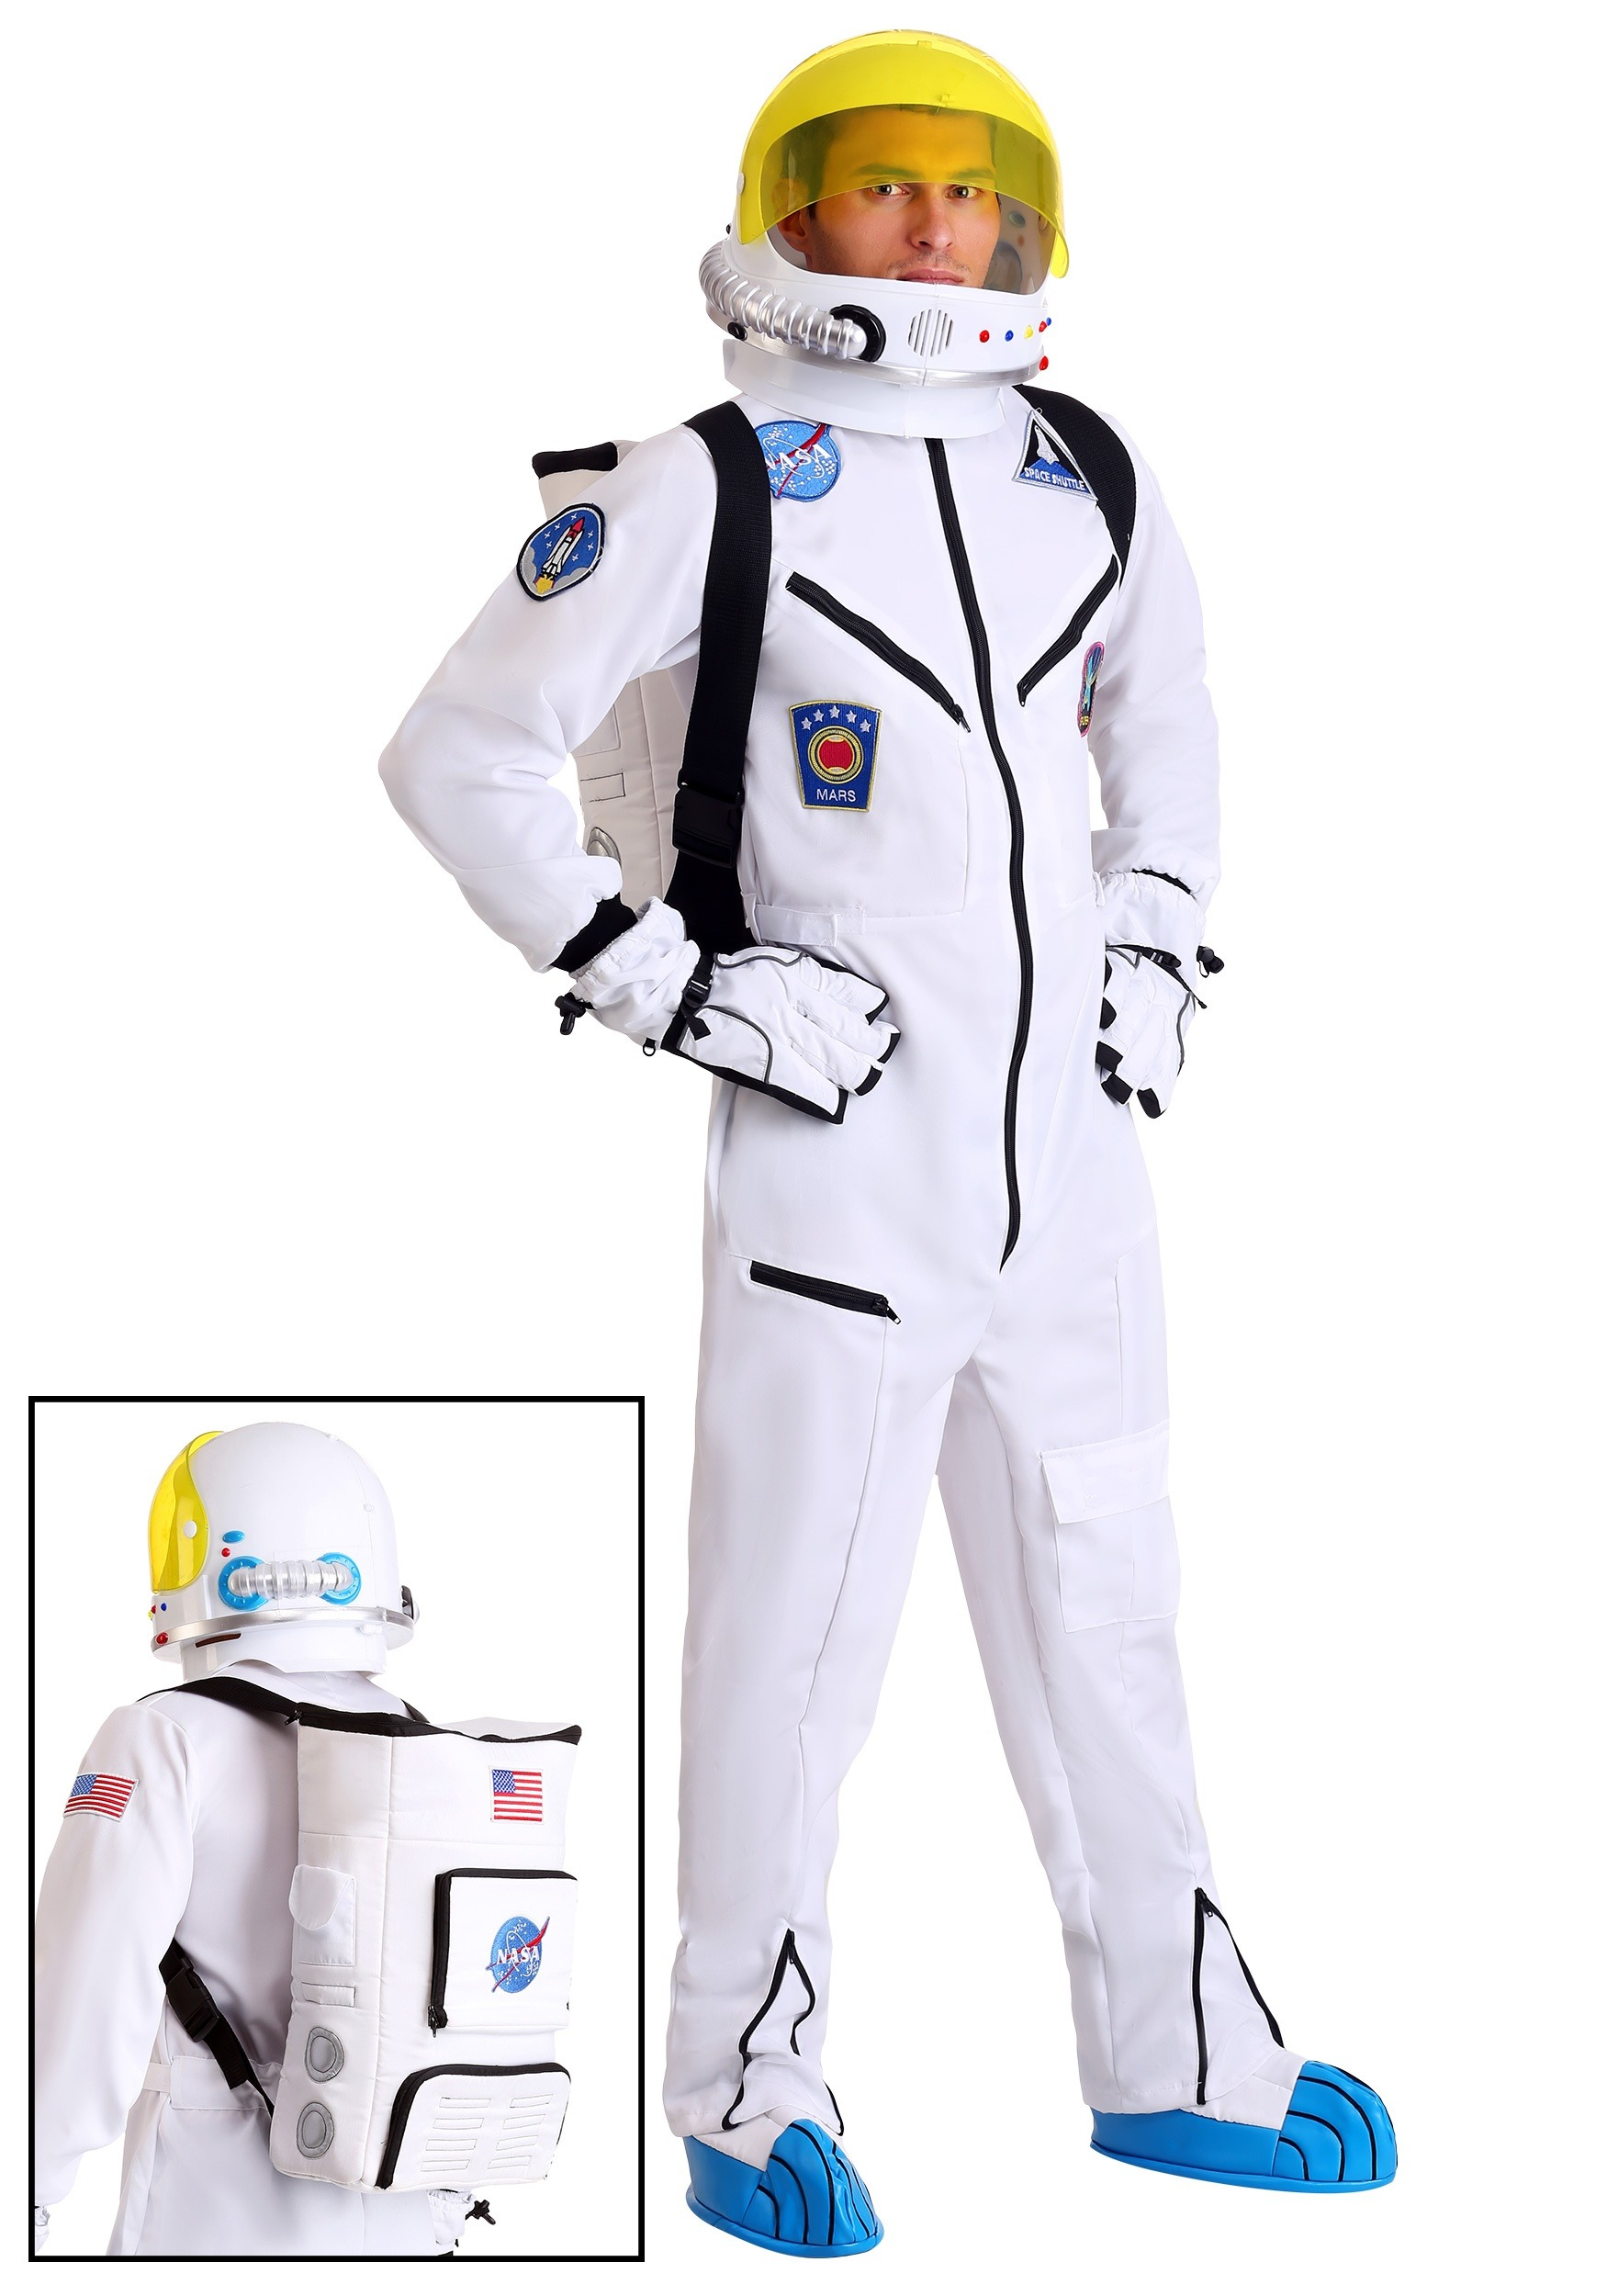 So you're ready to blast off to space! Great idea! Choosing an astronaut costume is a classic idea and a really great choice for any costume themed event.